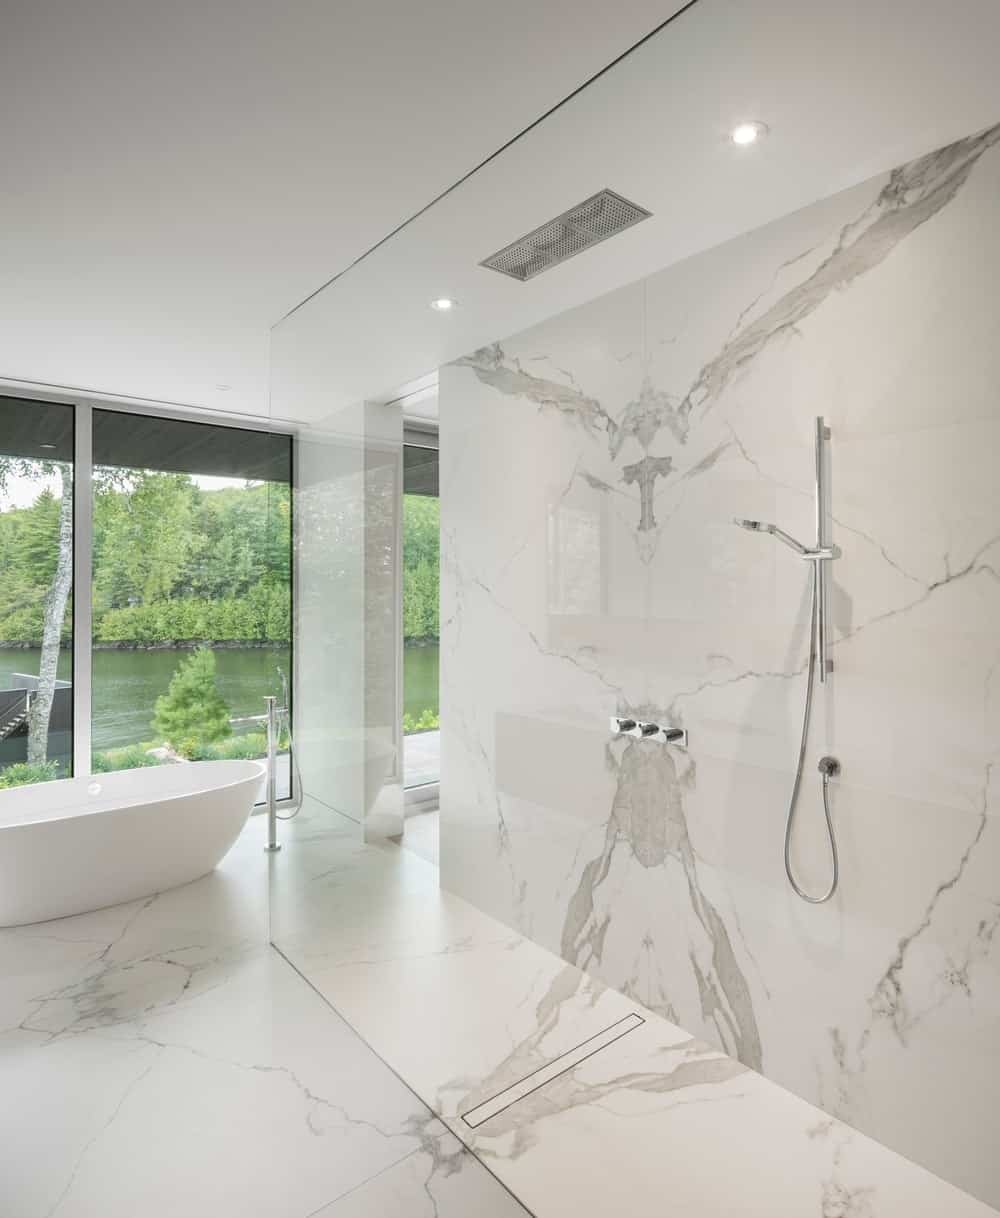 Other side of the elegant bathroom featuring a walk-in shower enclosed in frameless glass. It has marble walls that extend to the flooring for a cohesive look.